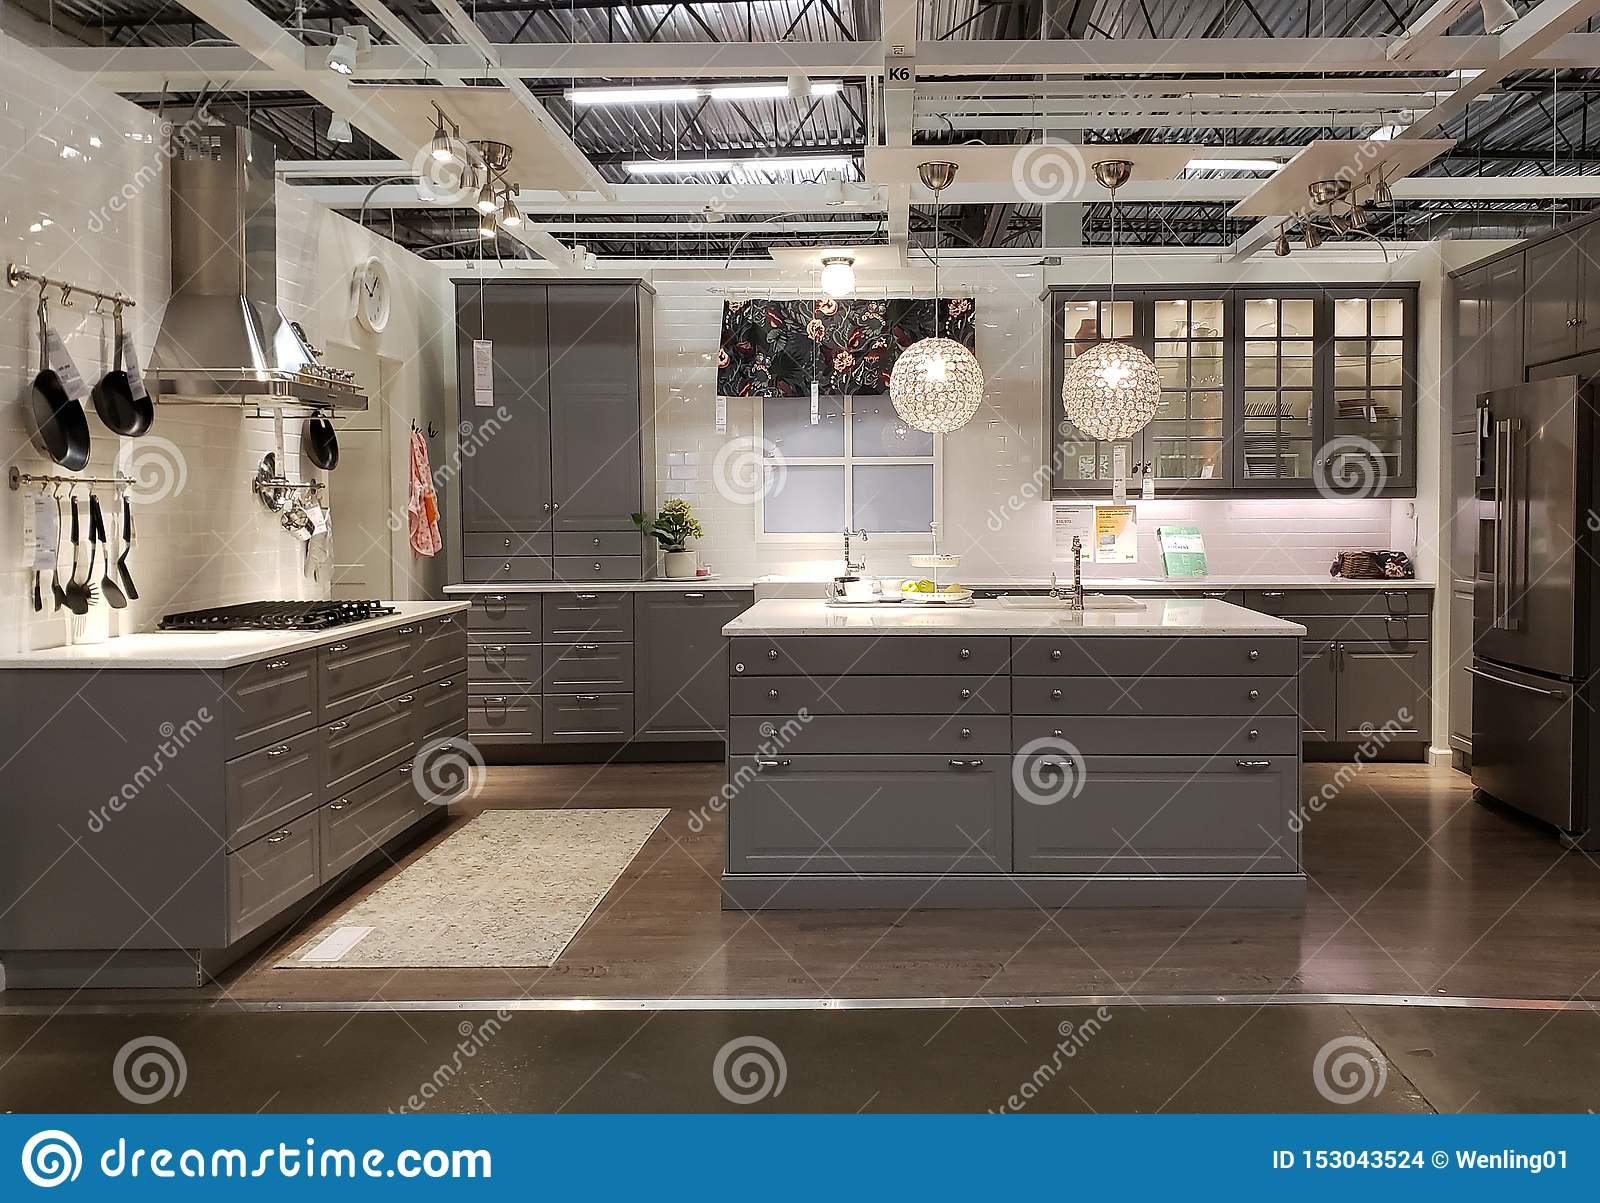 Nice Kitchen Design In Store IKEA Editorial Stock Image ...